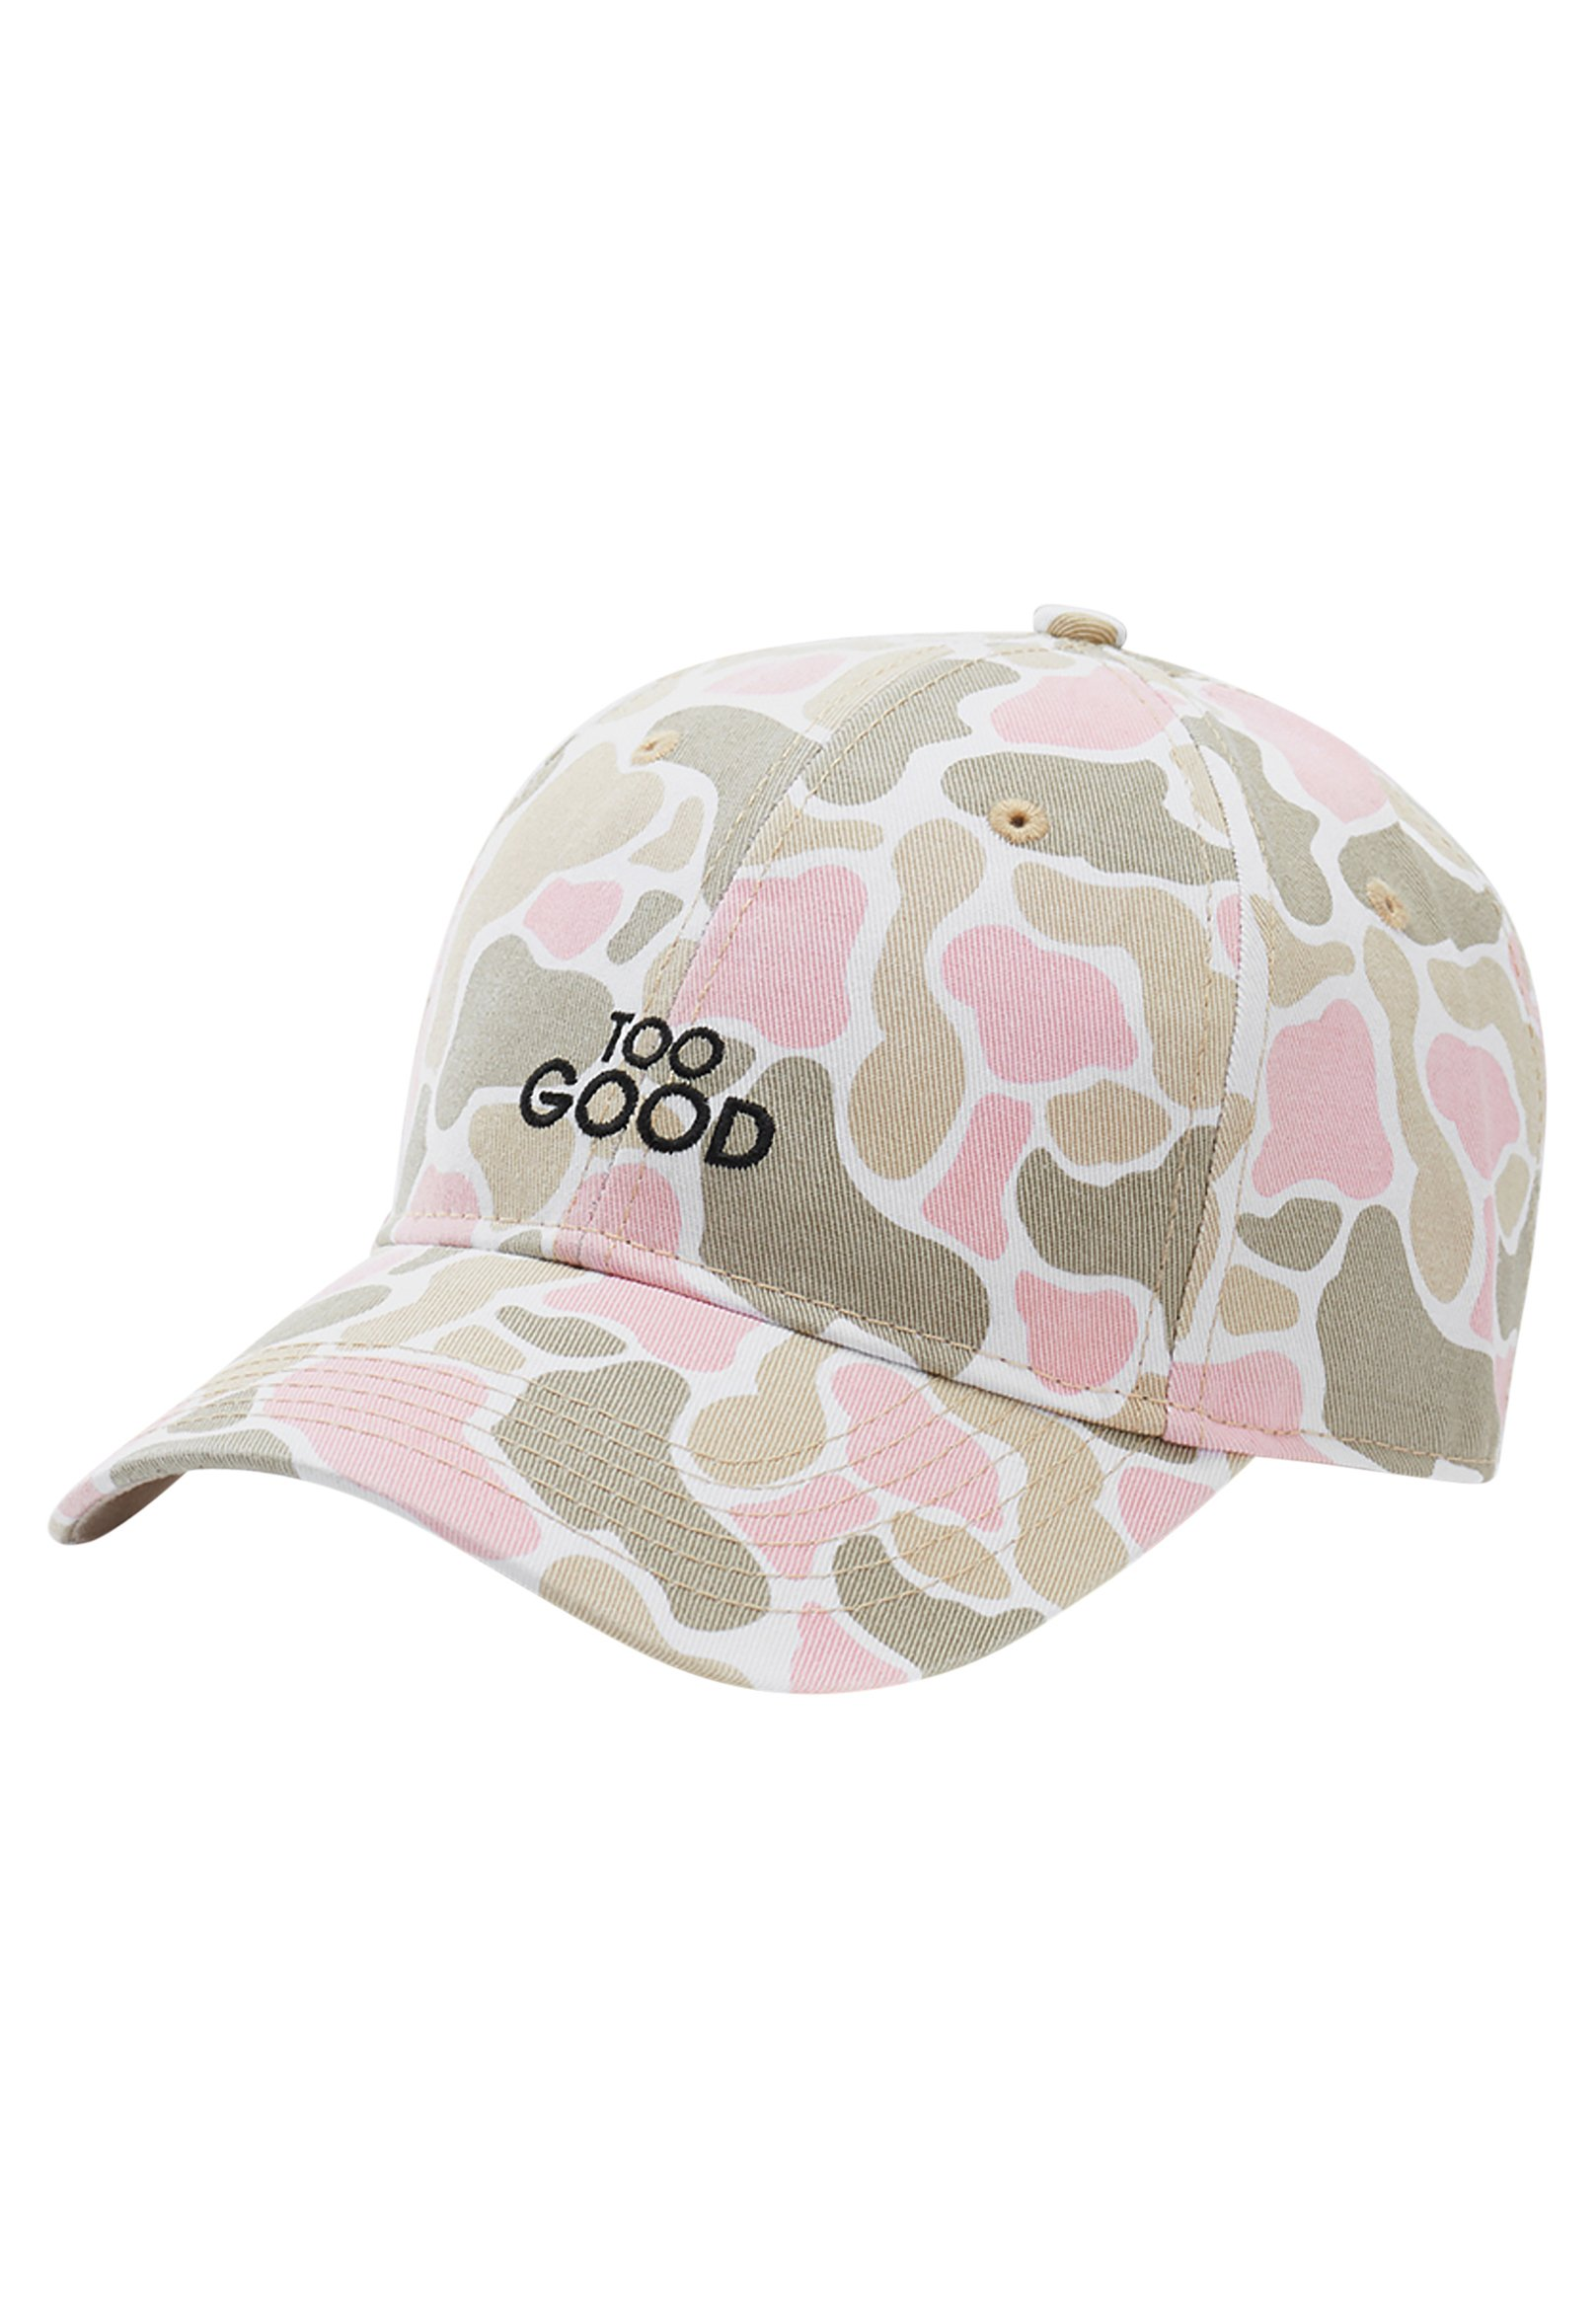 Homme WL GOOD CURVED - Casquette